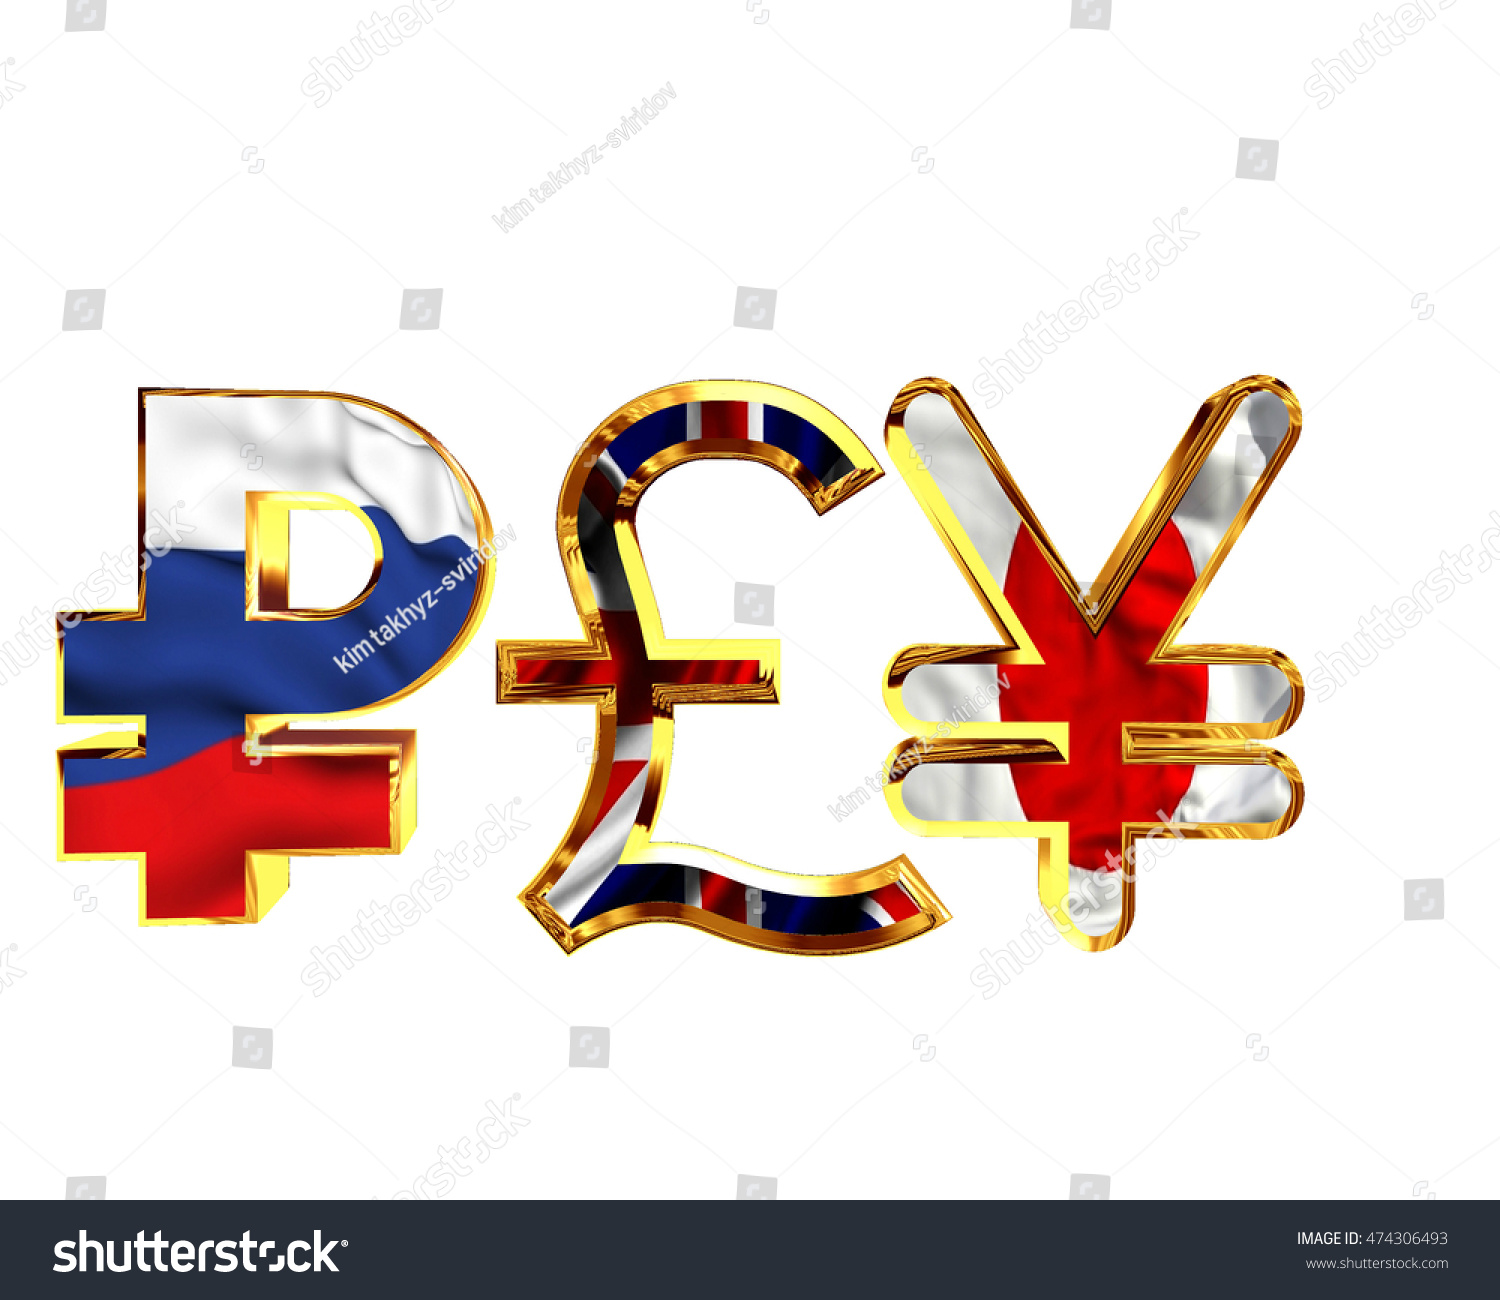 3d Illustration Symbols Of National Currency Cash On A White